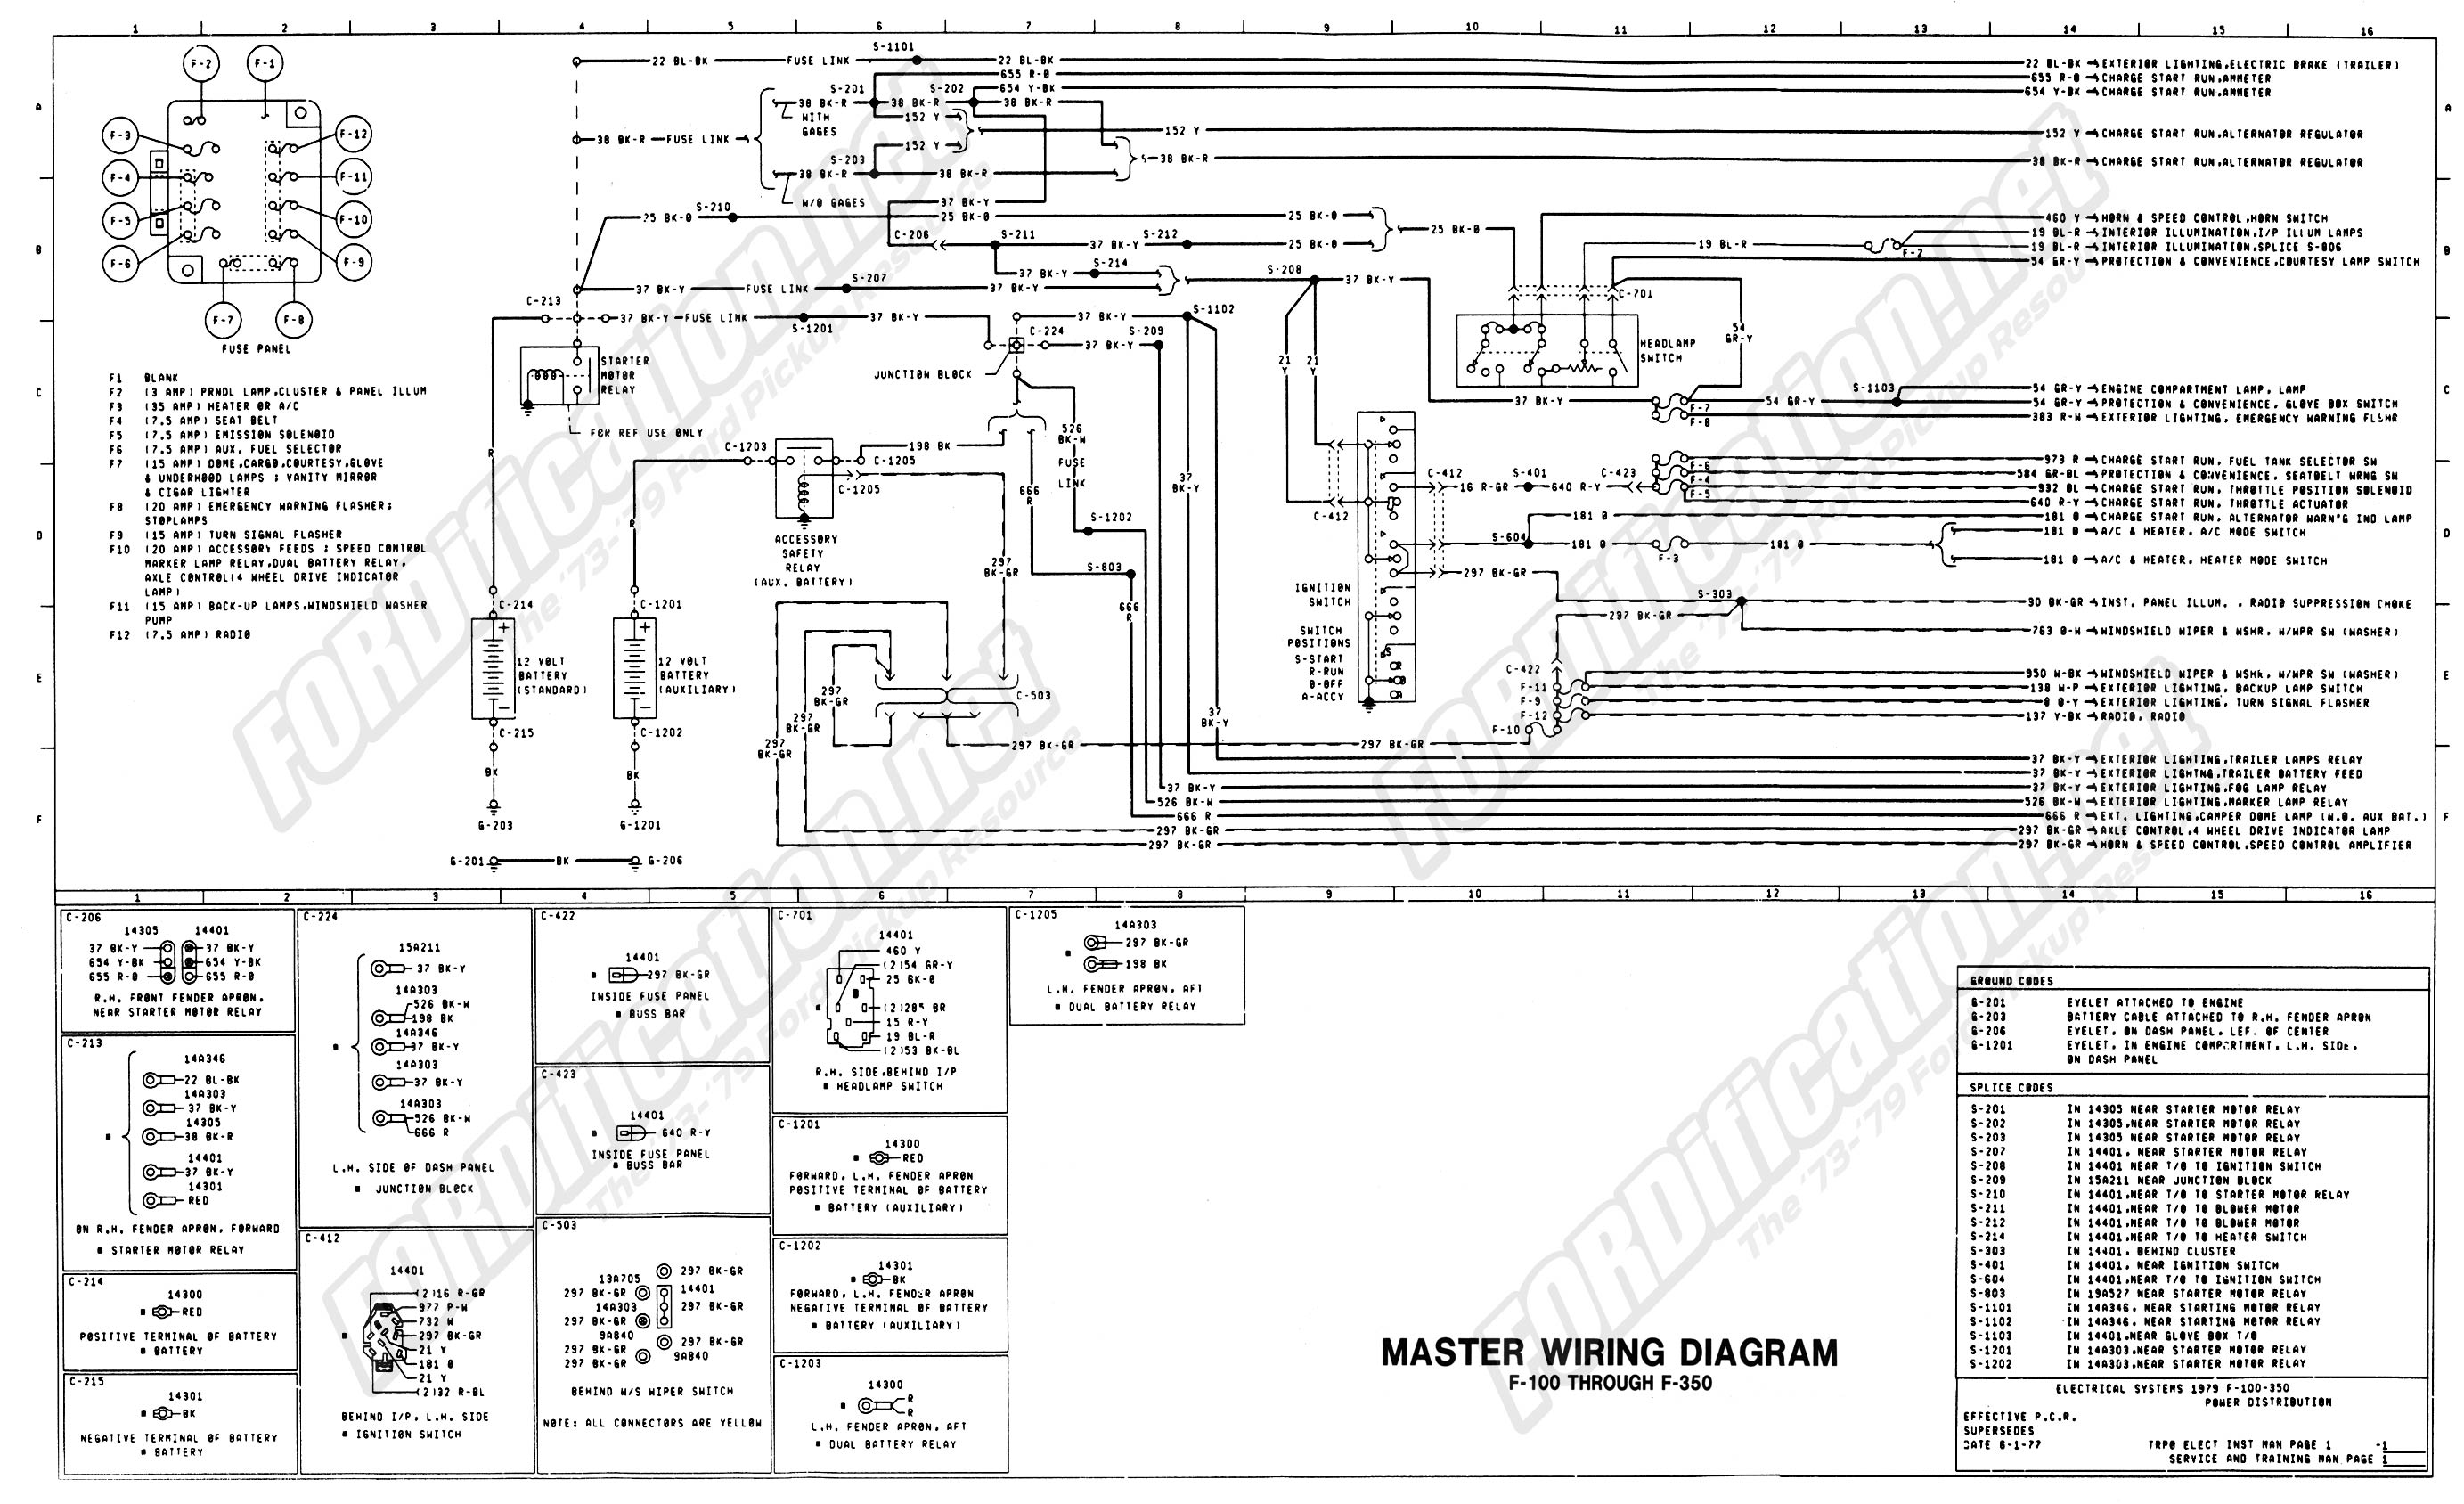 wiring_79master_1of9 1973 1979 ford truck wiring diagrams & schematics fordification net  at crackthecode.co